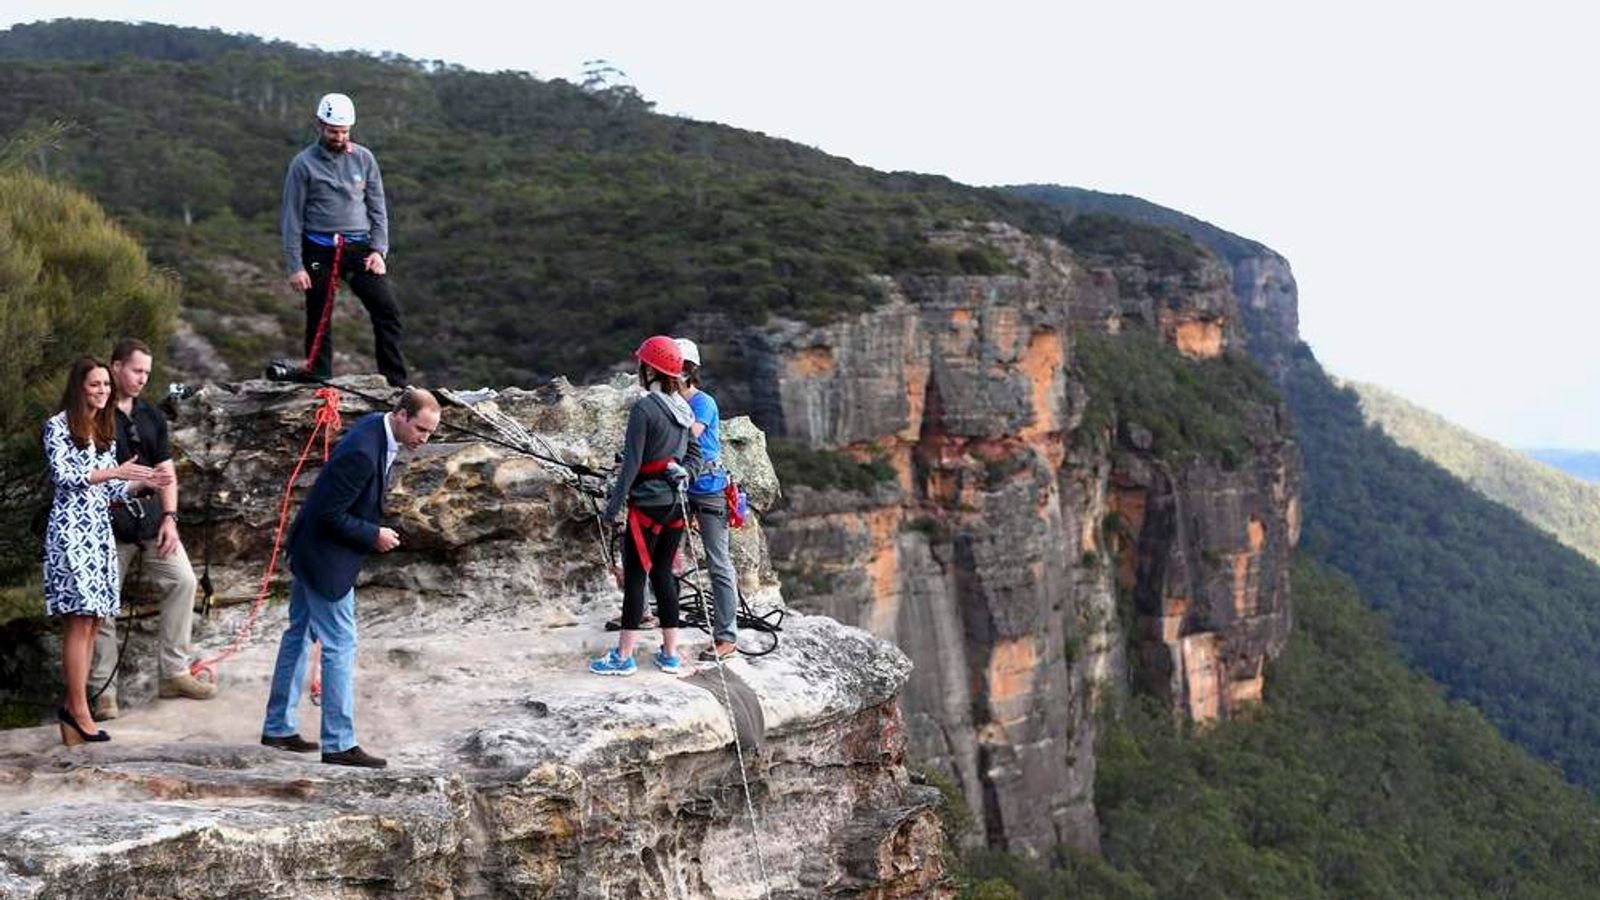 Britain's Prince William observes abseiling by the Mountain Youth Services group near his wife Catherine, the Duchess of Cambridge, as they visit Narrow Neck Lookout in the Blue Mountains town of Katoomba